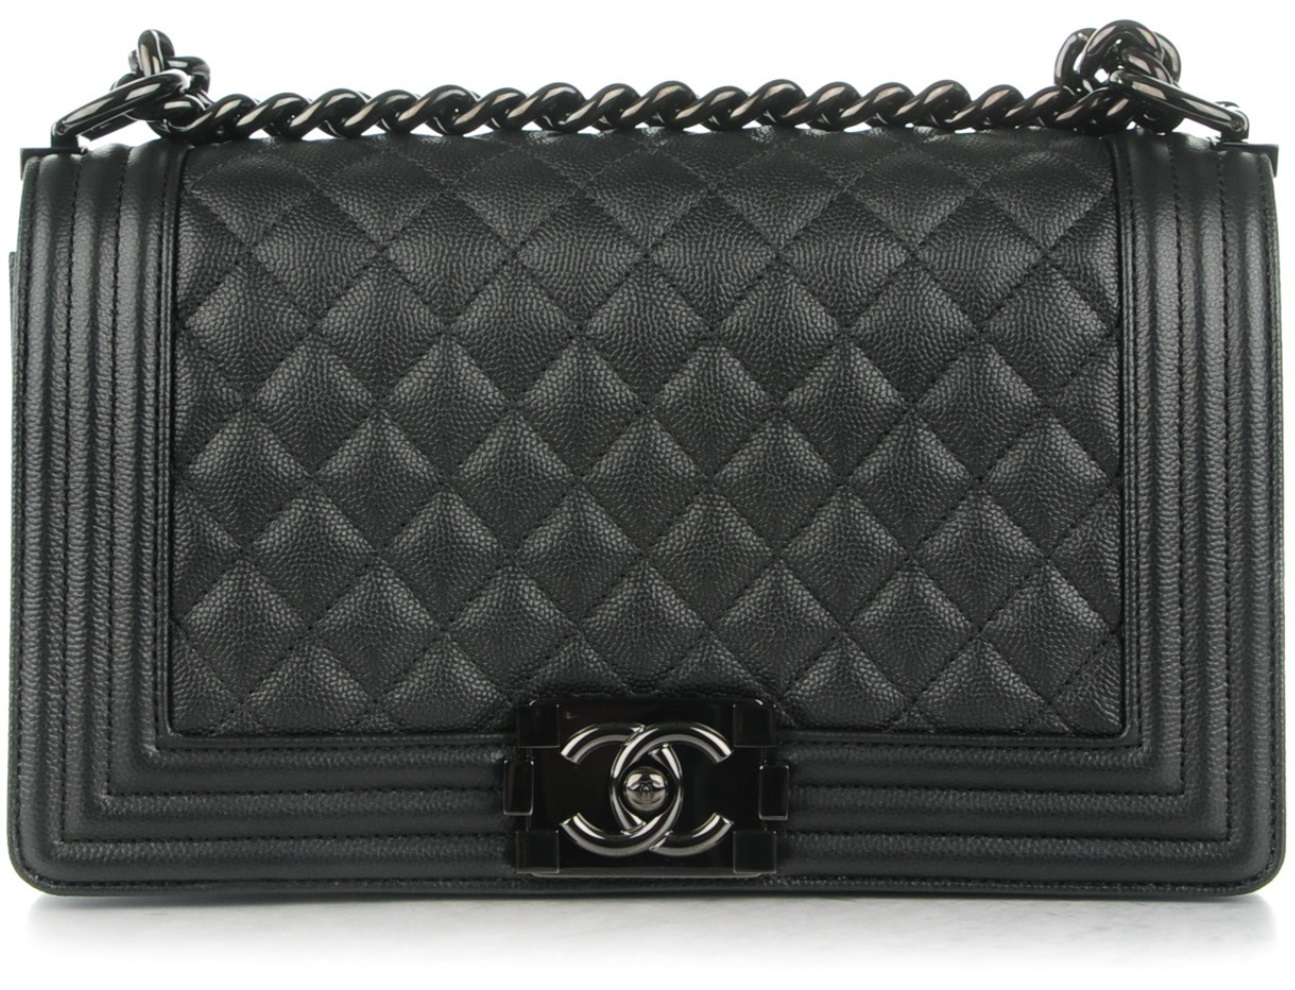 Auth Chanel Limited Edition 2017 So Black and 41 similar items. Soblack6 583c308a13100